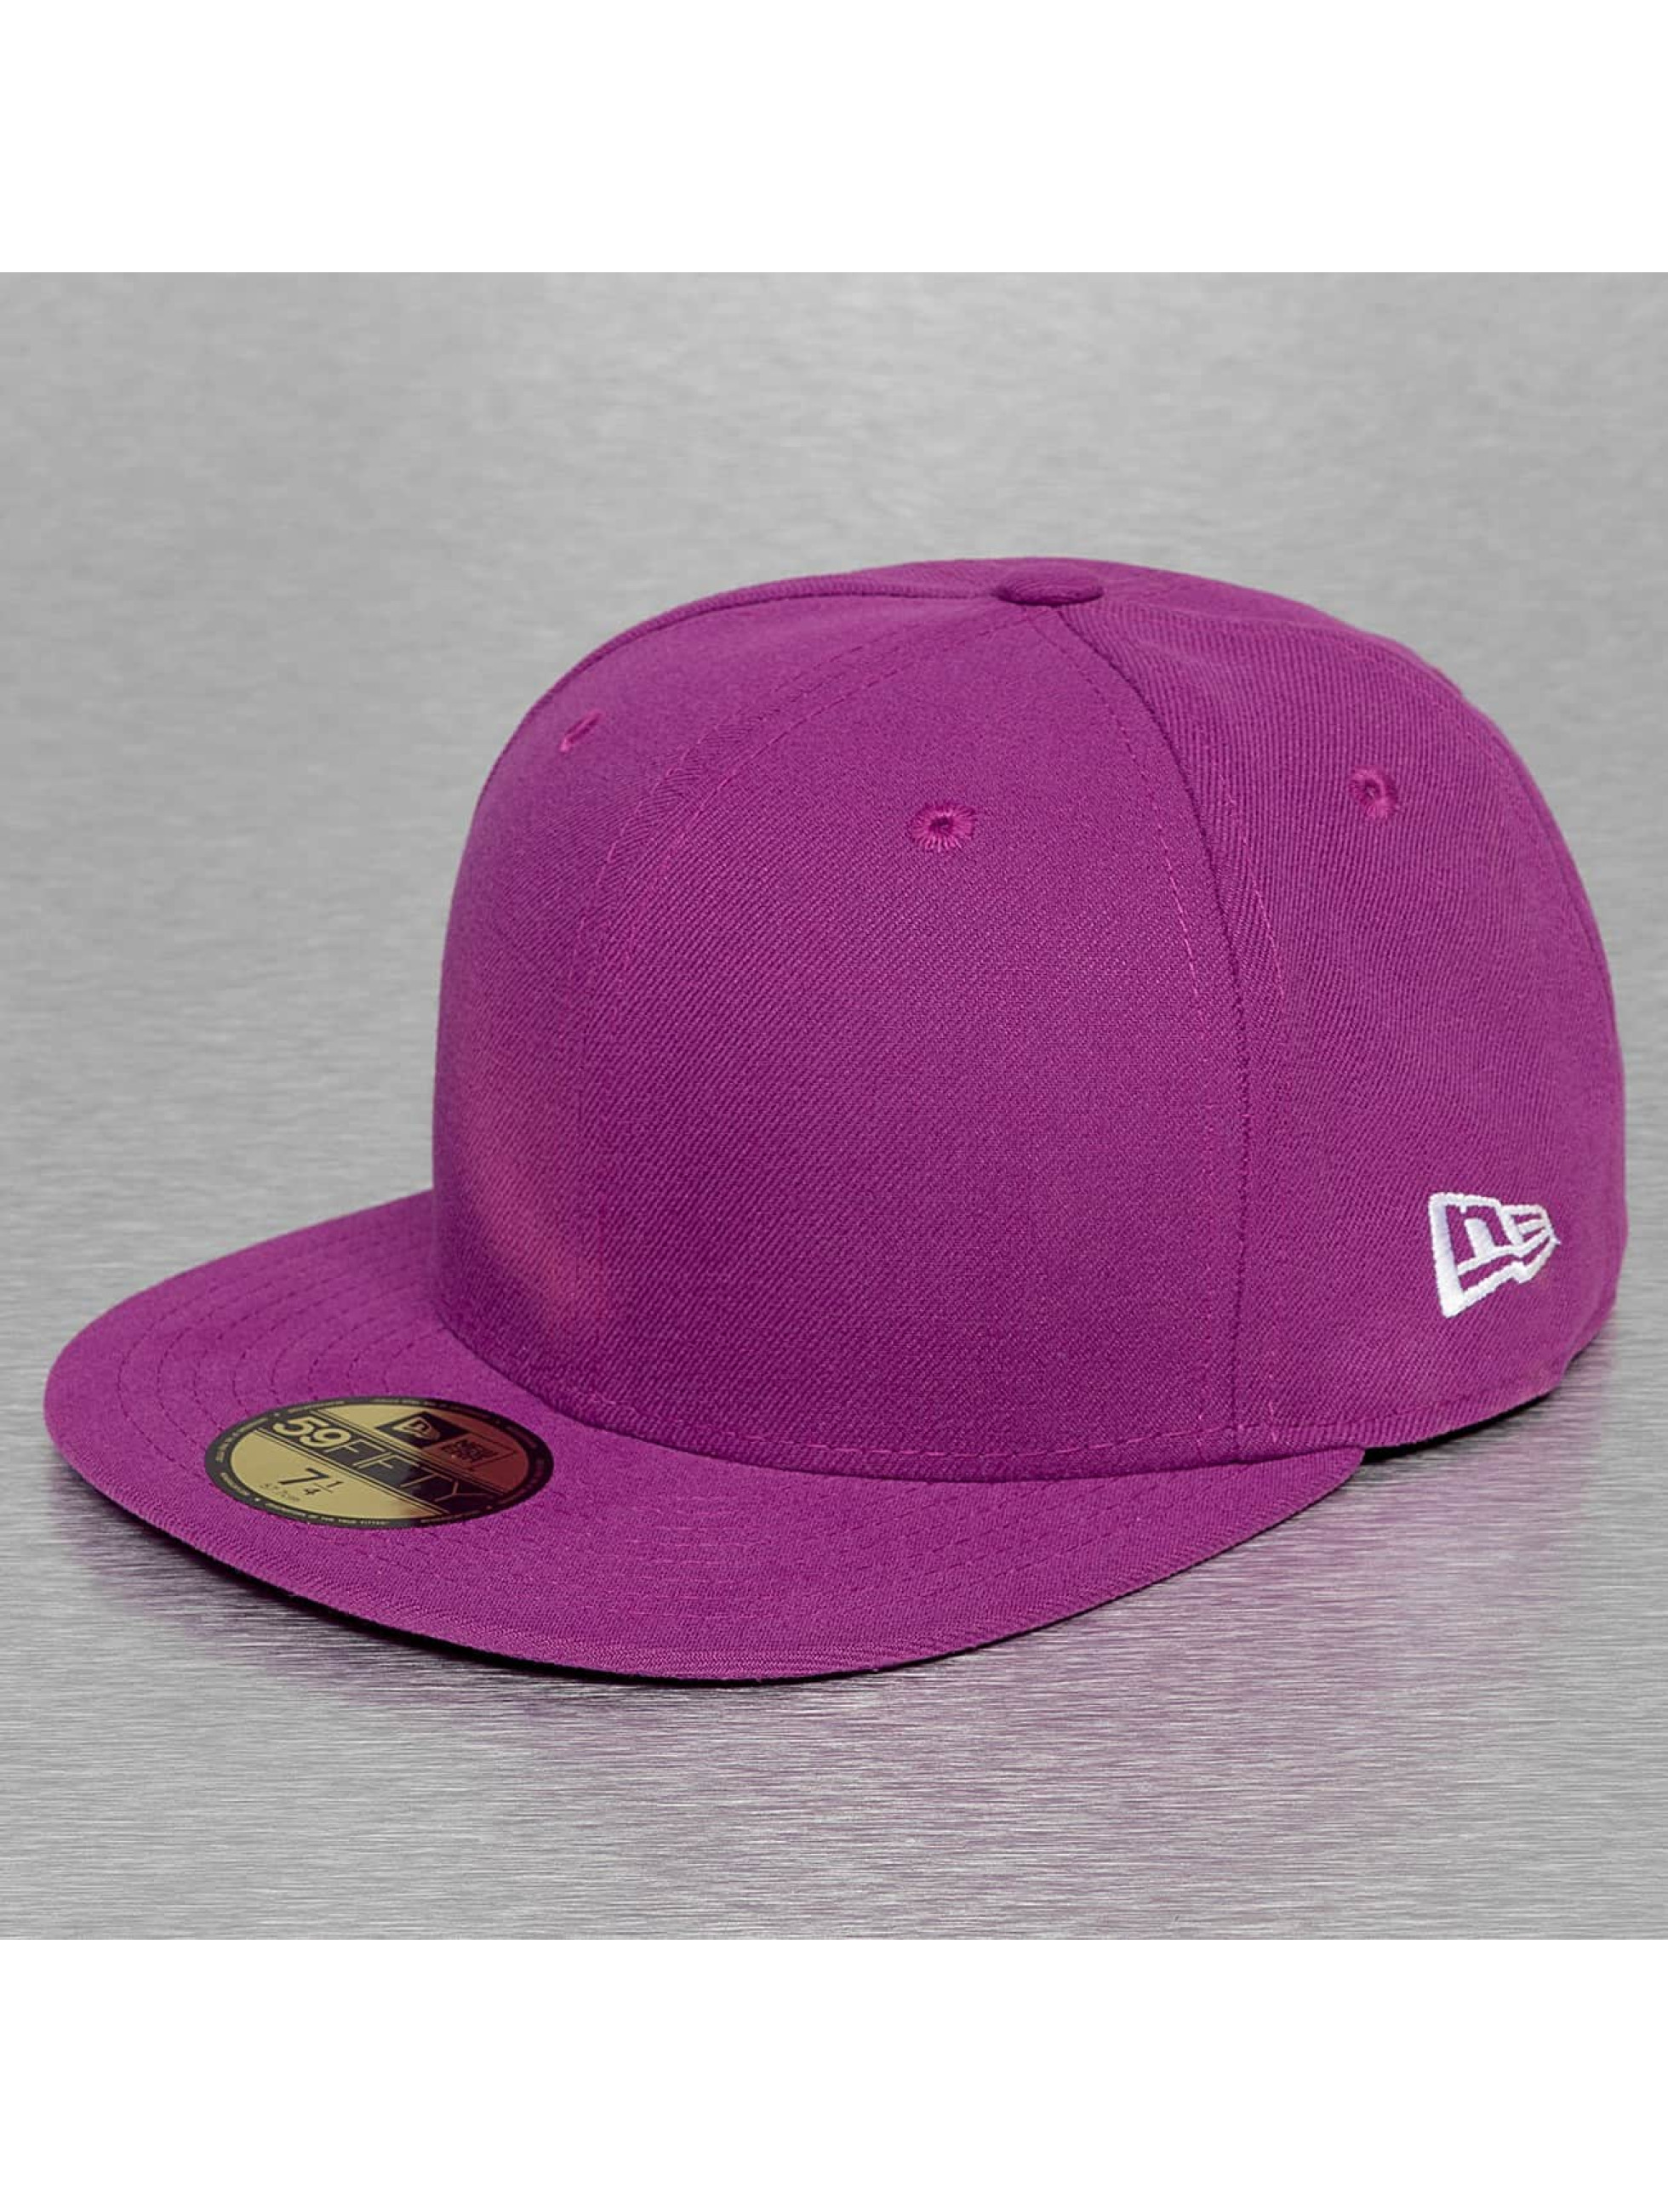 New Era Casquette / Fitted Original Basic 59Fifty en pourpre